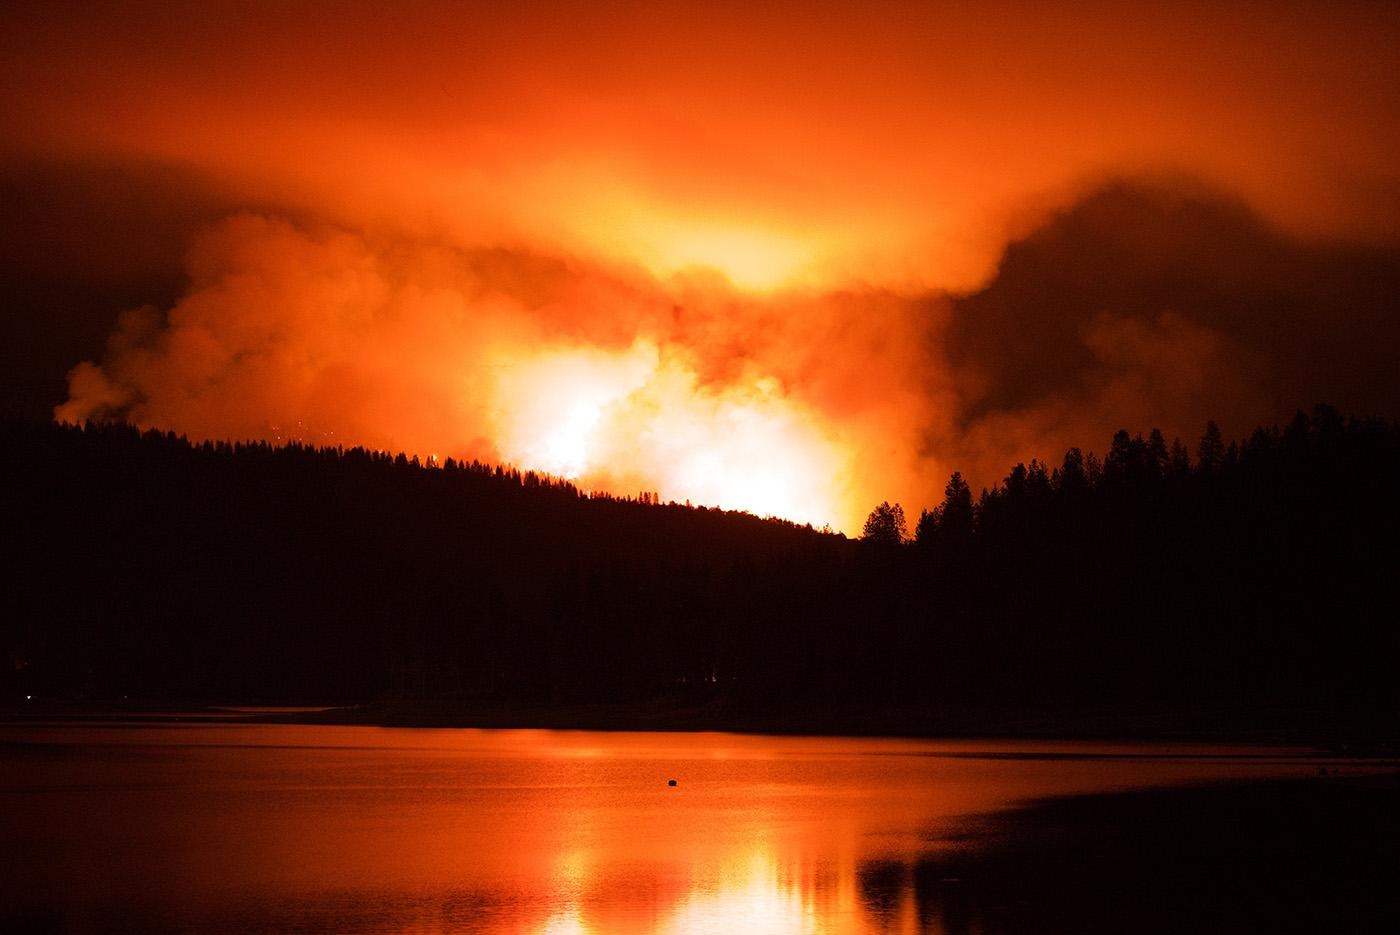 A wildfire just outside of Yosemite National Park in Bass Lake, California. (Courtesy of Joseph Pontecorvo/© THIRTEEN Productions LLC)